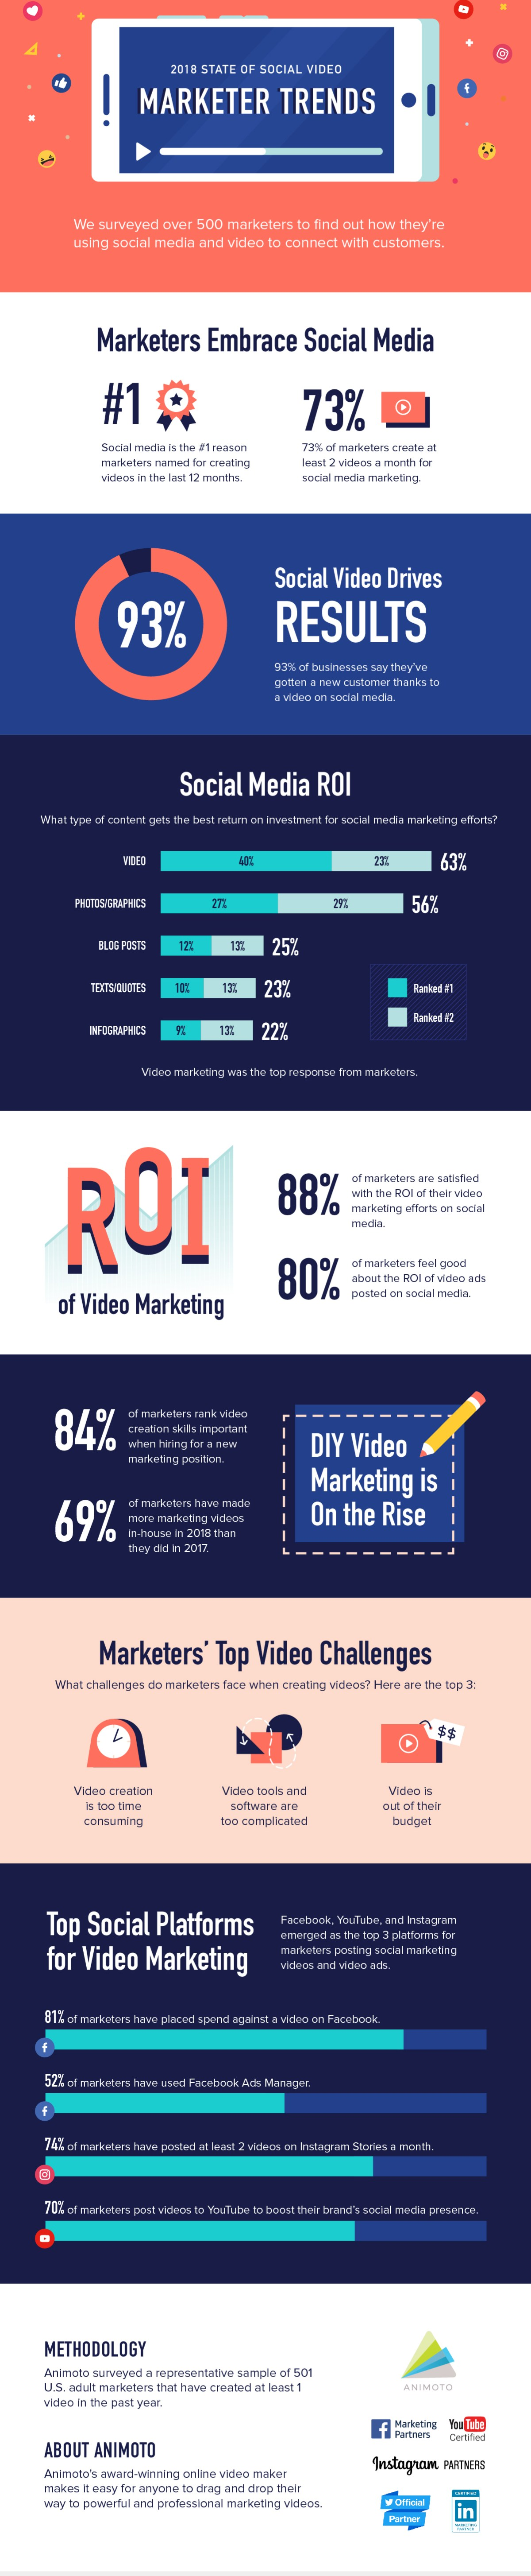 2018 State of Social Video report [Infographic]